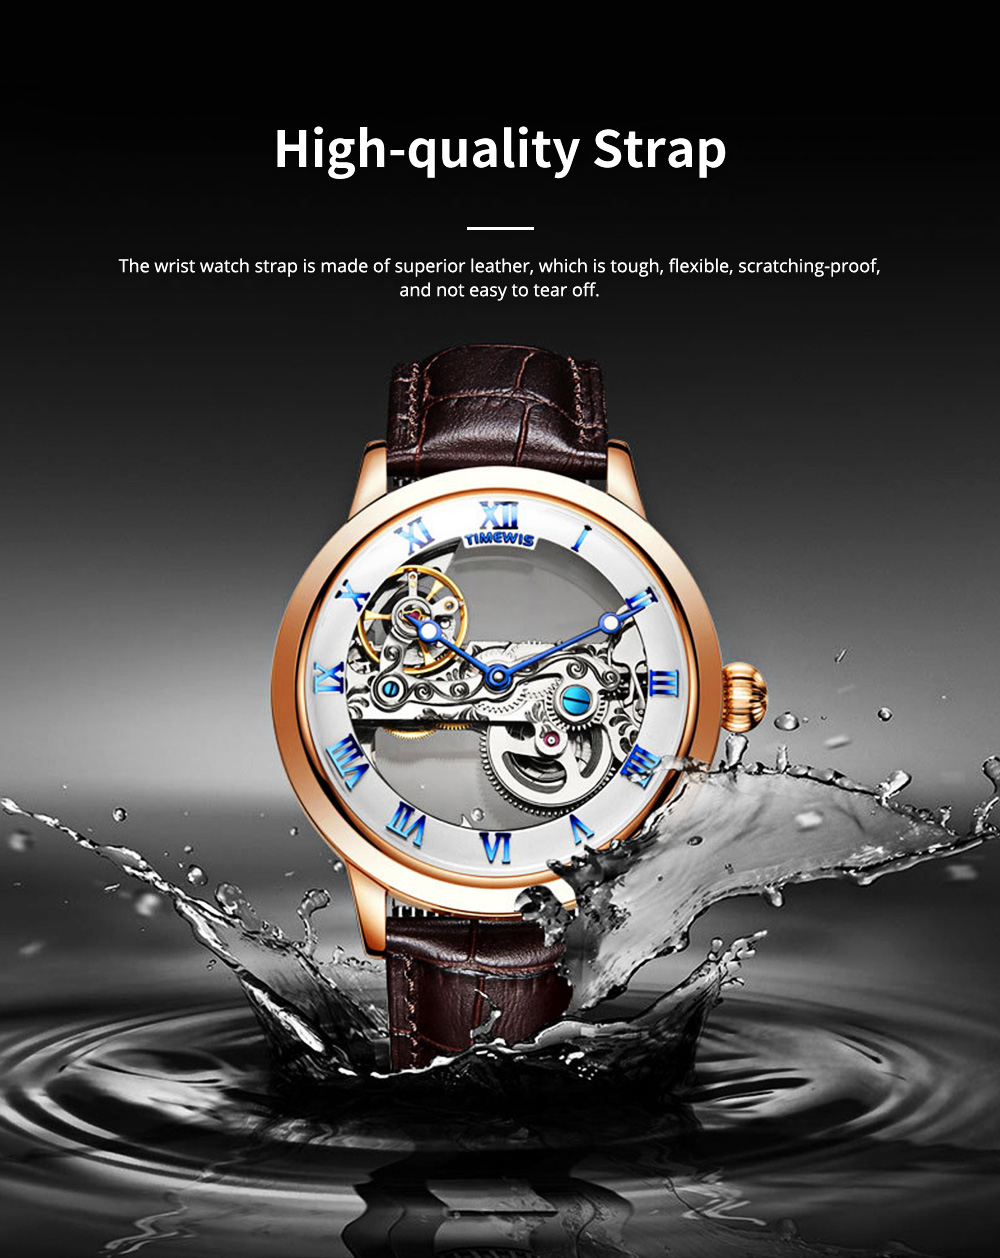 Waterproof Mechanical Watch for Men Transparent Fashionable with Leather Band Strap Scratchproof 1